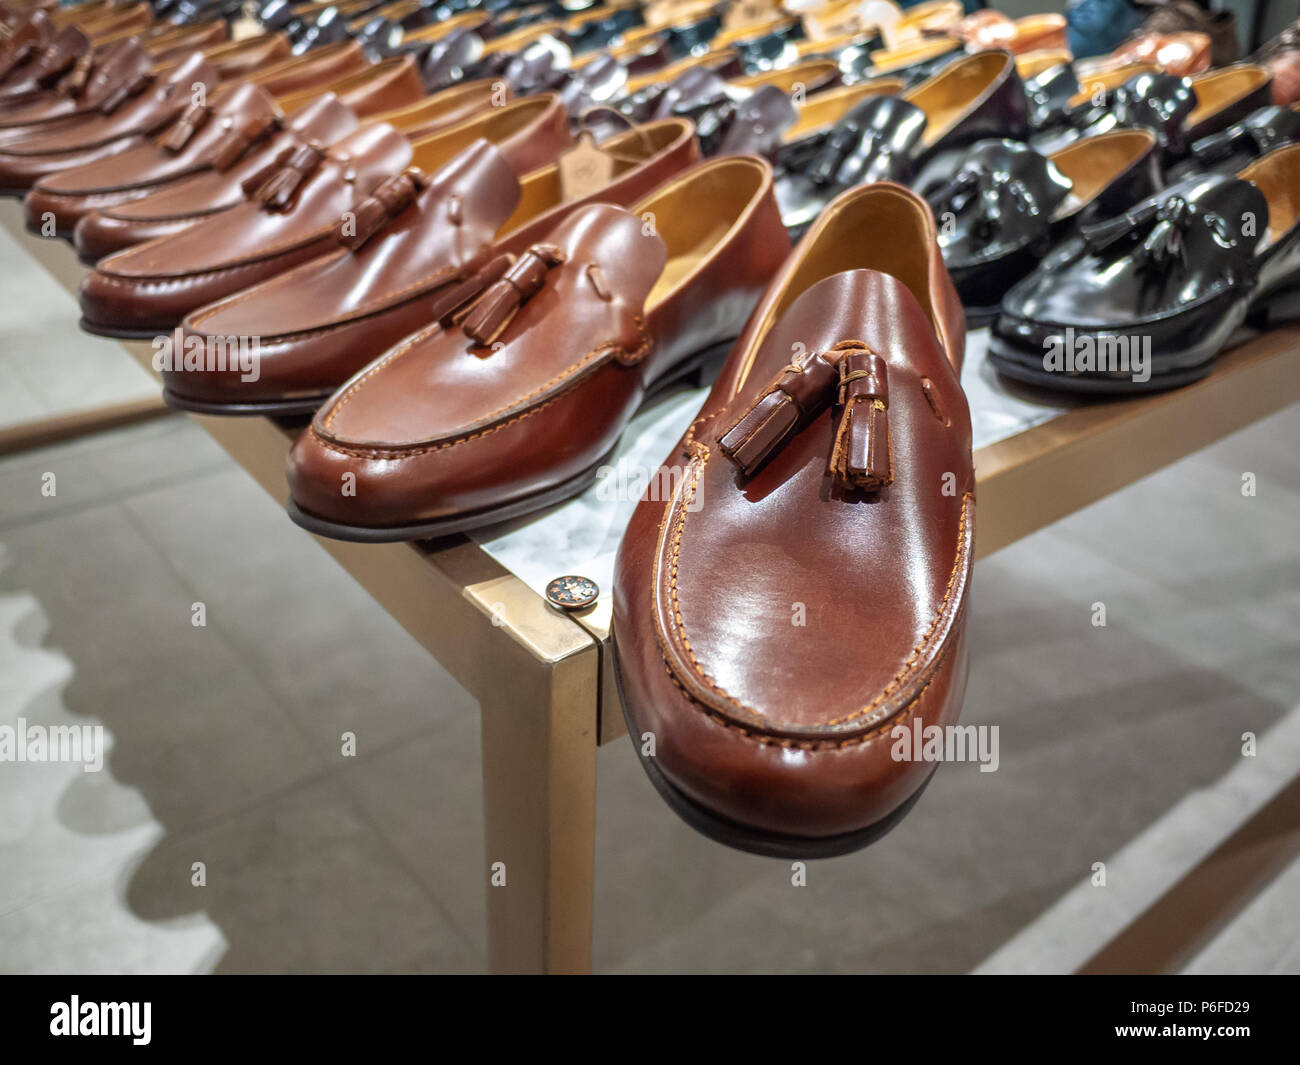 c7437288093 Men's leather shoes loafers displayed in shopping mall. Debenhams ...